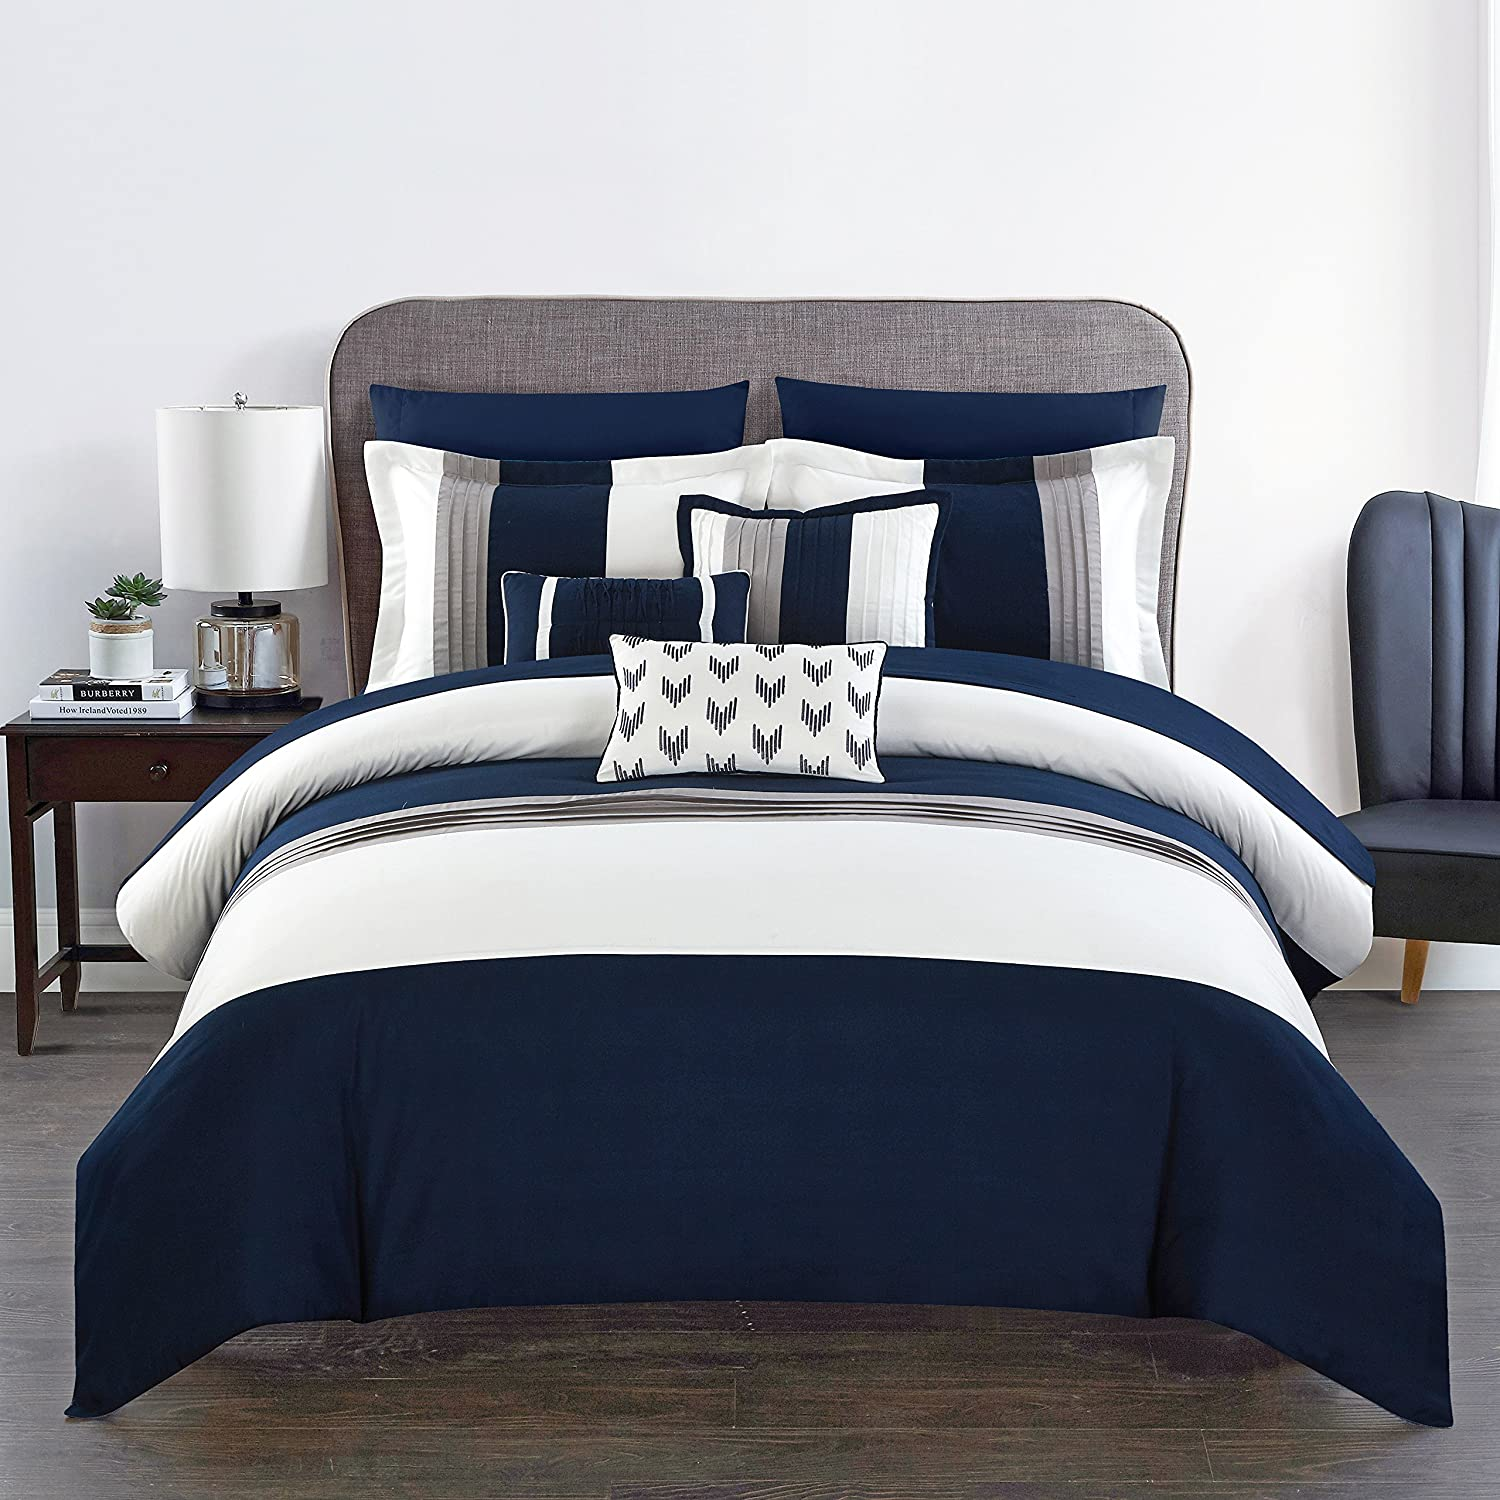 Amazon com chic home ayelet 10 piece comforter set color block ruffled bag bedding queen navy home kitchen